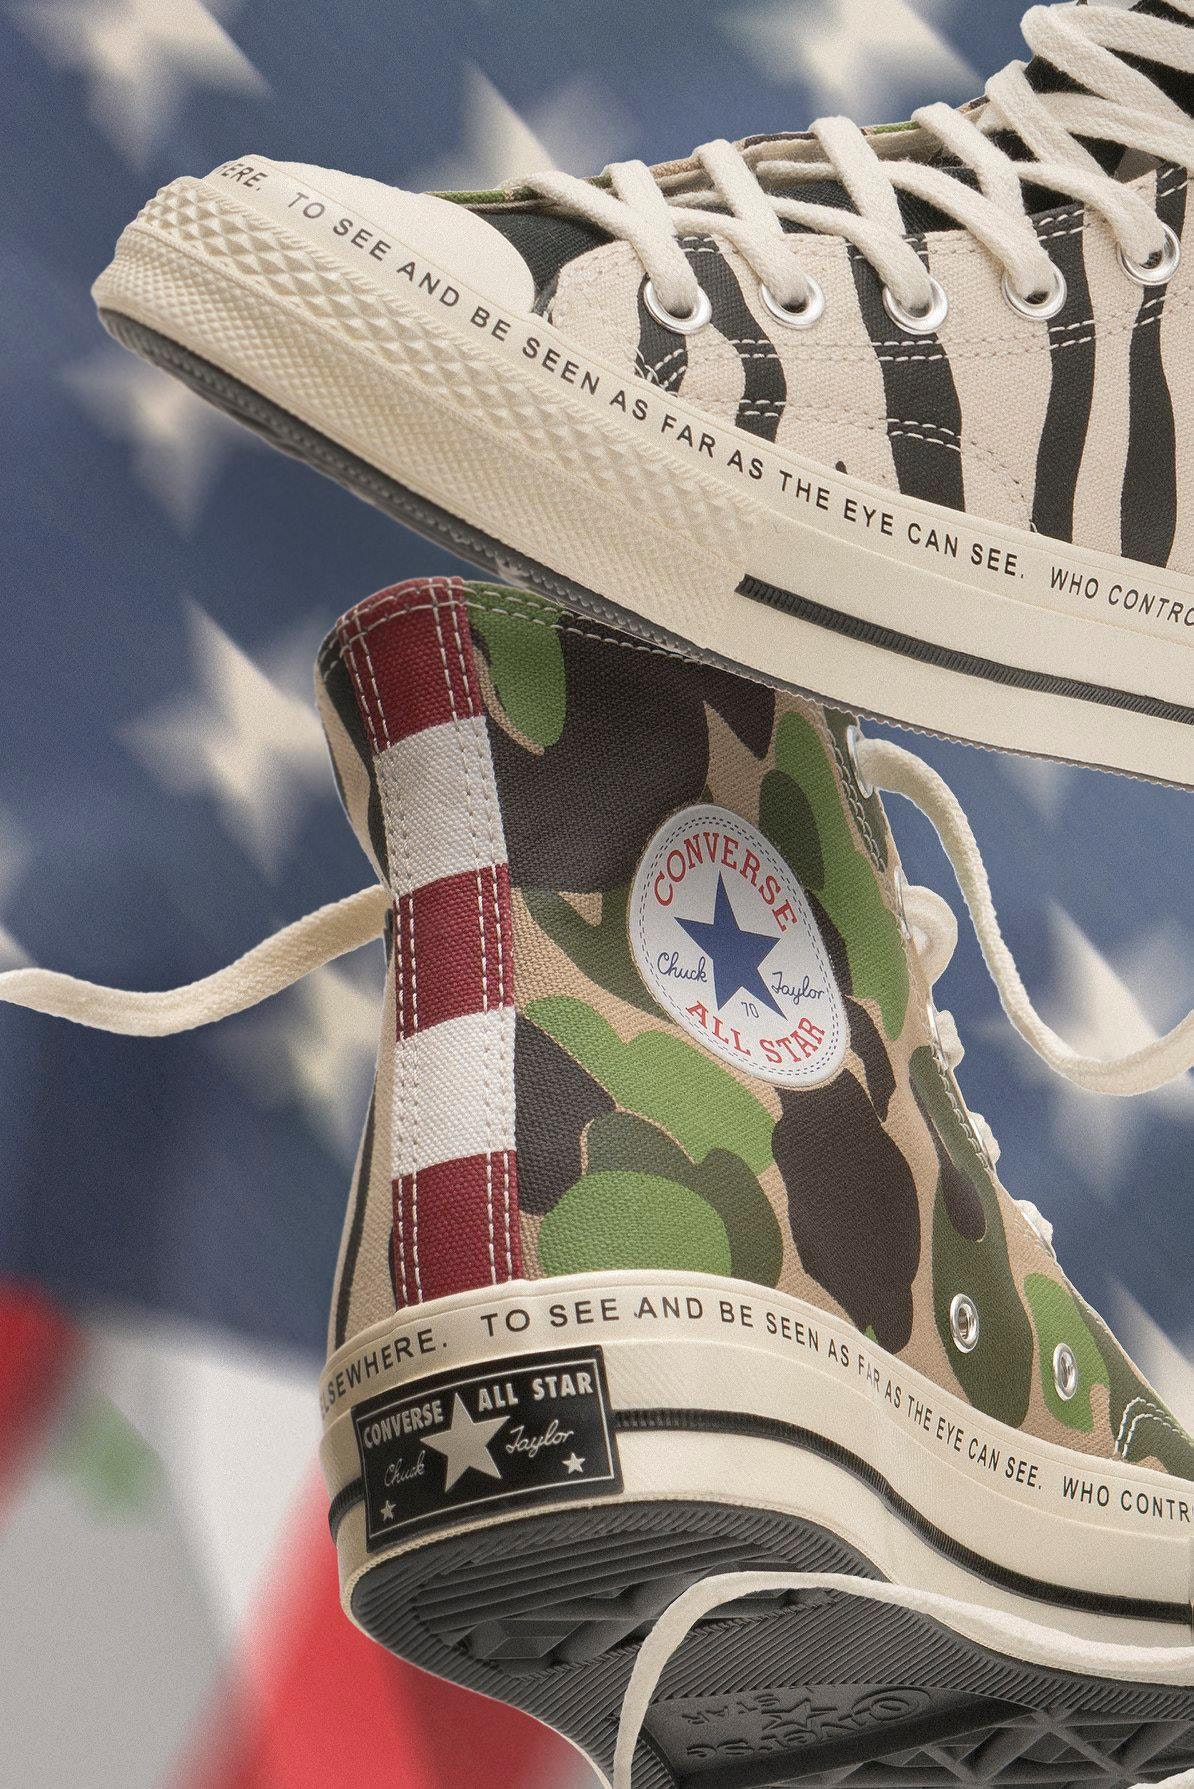 e4f1caf03bb The Brain Dead x Converse collection reimagines the classic Chuck Taylor  All Star '70 silhouette with a mixture of prints, punchy graphics, and wild  colors.